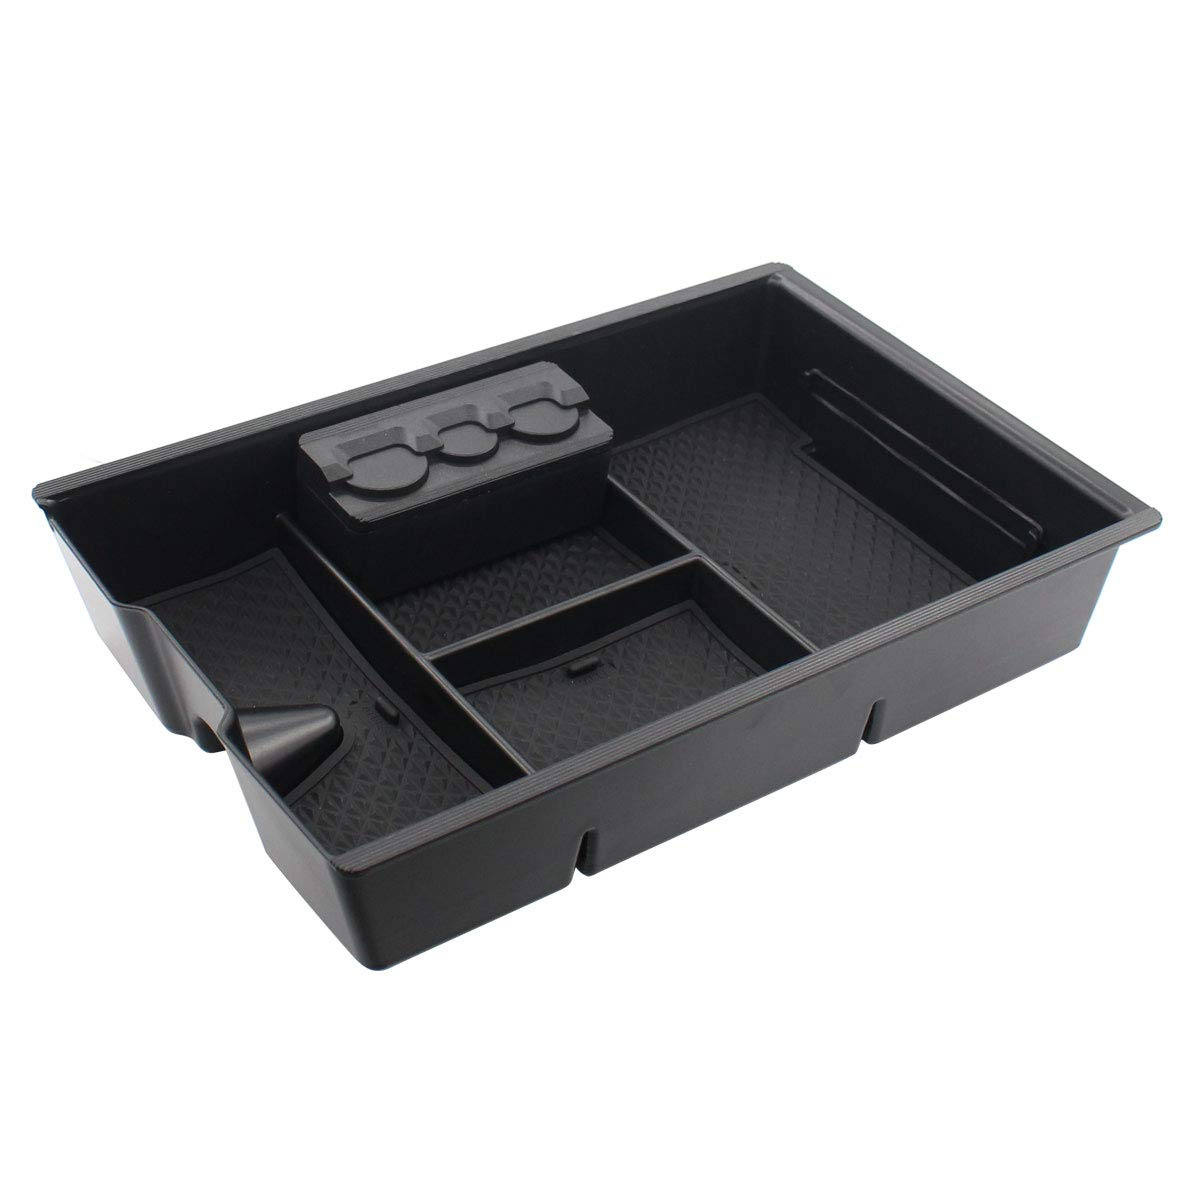 XtremeAmazing Lower Center Console Insert Organizer Armrest Secondary Storage Box Container Glove Pallet Tray with Coin Holder